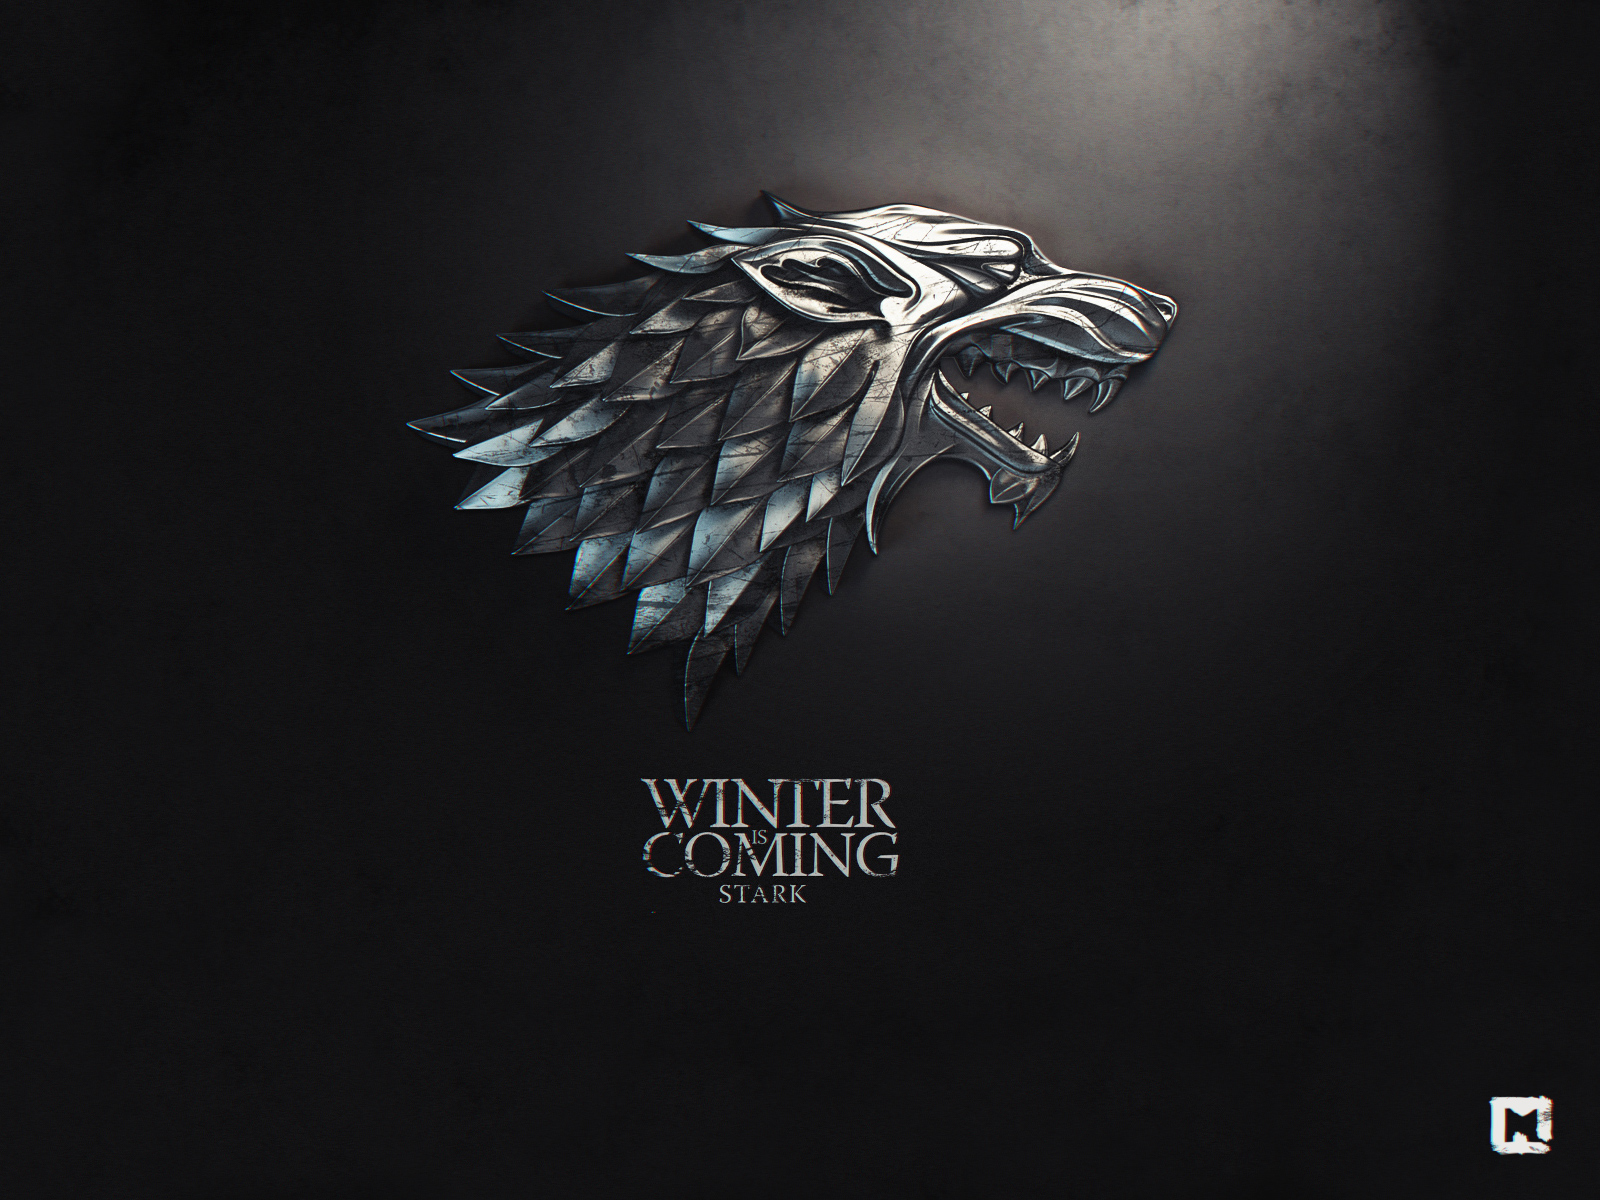 winter is coming wallpaper description download winter is coming 1600x1200